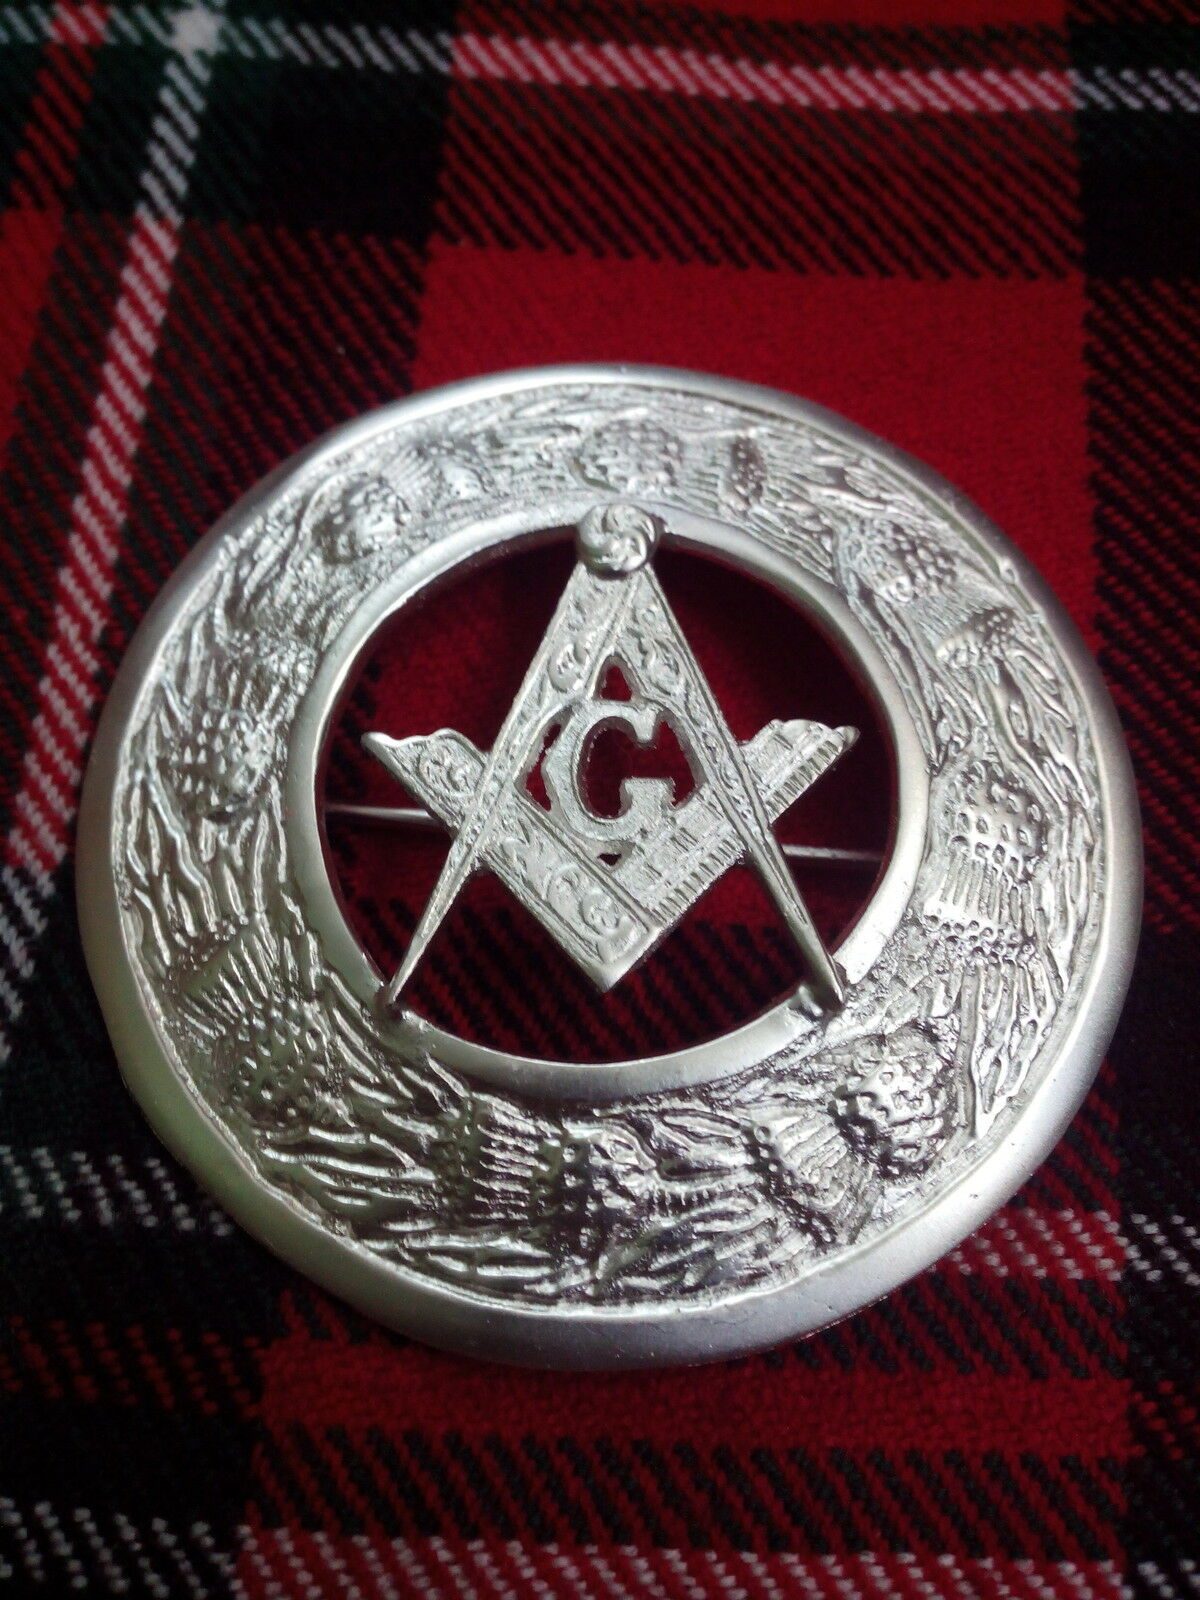 TC Kilt Fly Plaid Brooch Masonic Crest Thistle Border Silver Plated/Brooches